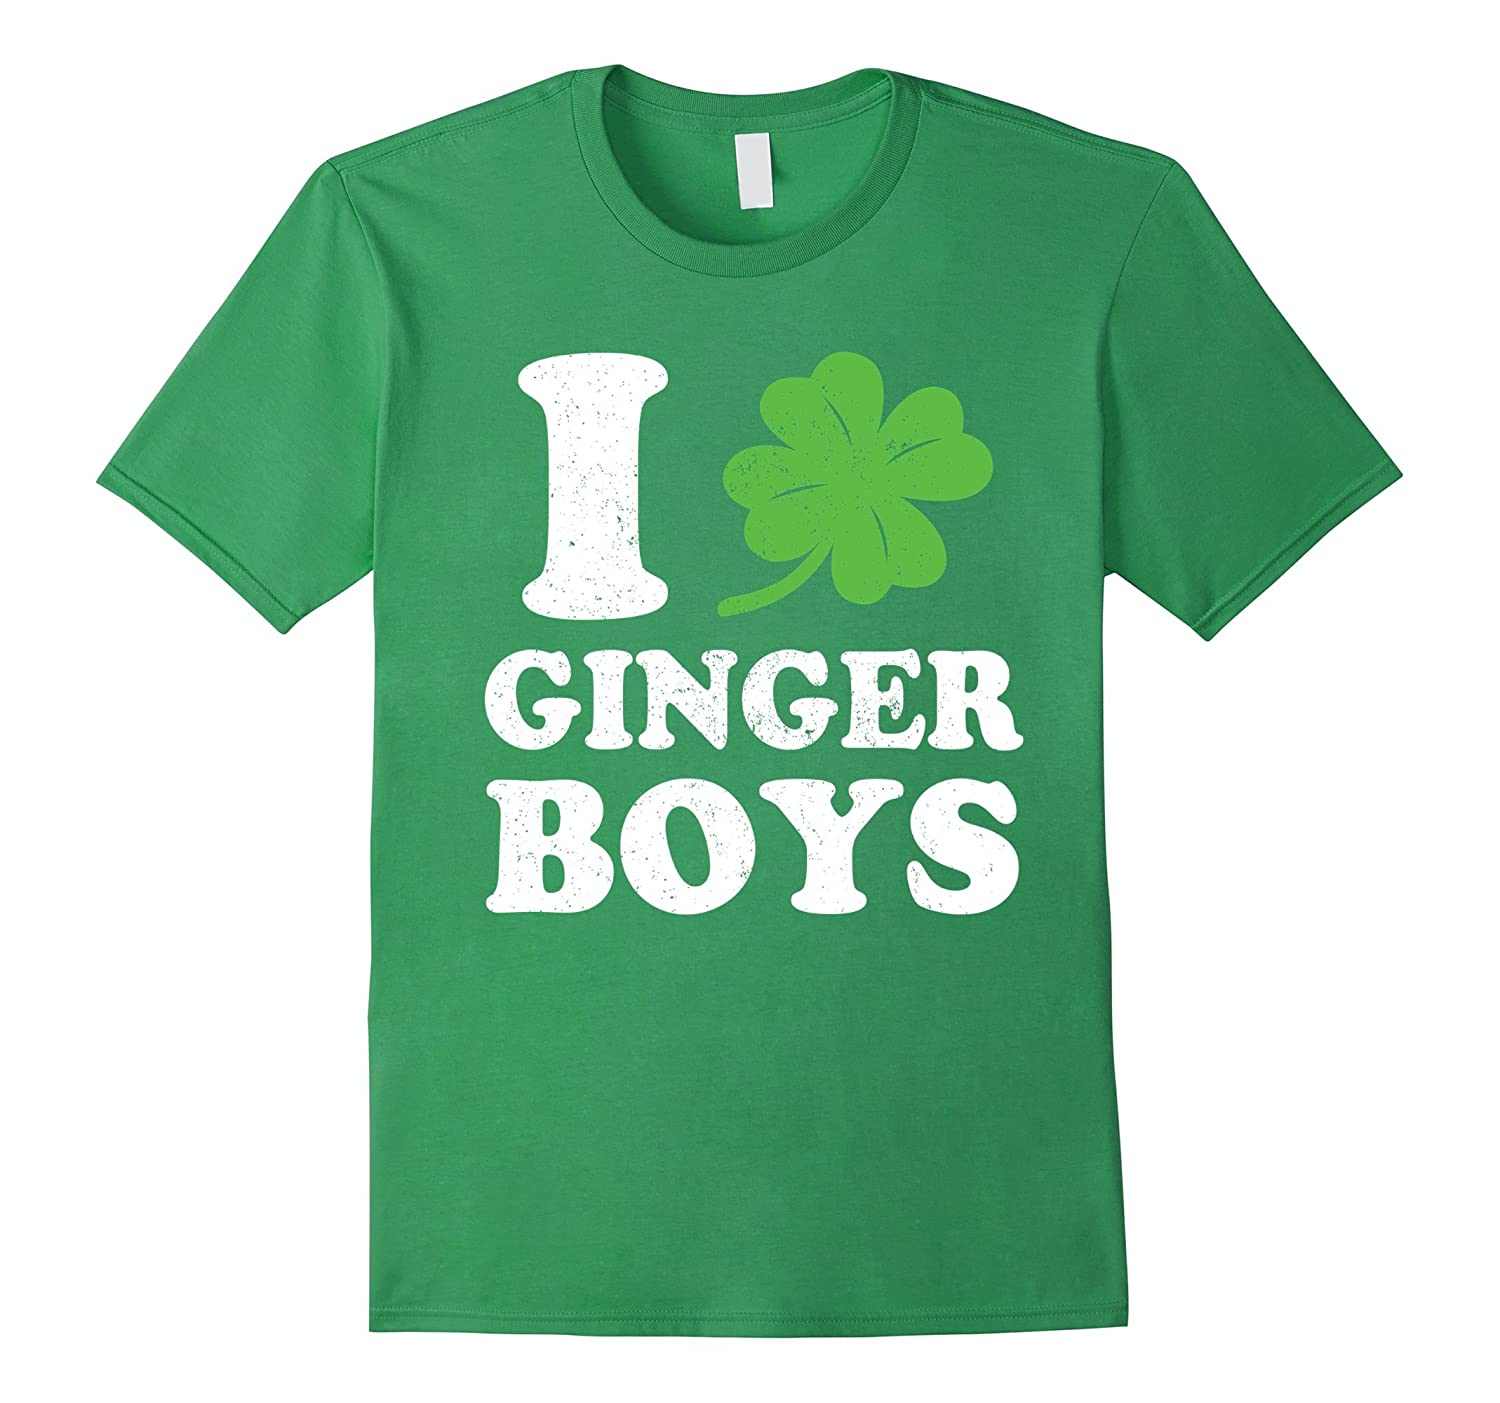 black single men in saint patrick Buy nhl st patrick's day gear at shopnhlcom shop for great st paddy's apparel like official st patrick's day jerseys, green tees and hats, and much more shopnhlcom has all the top gear you'll find online for men, women, and kids.